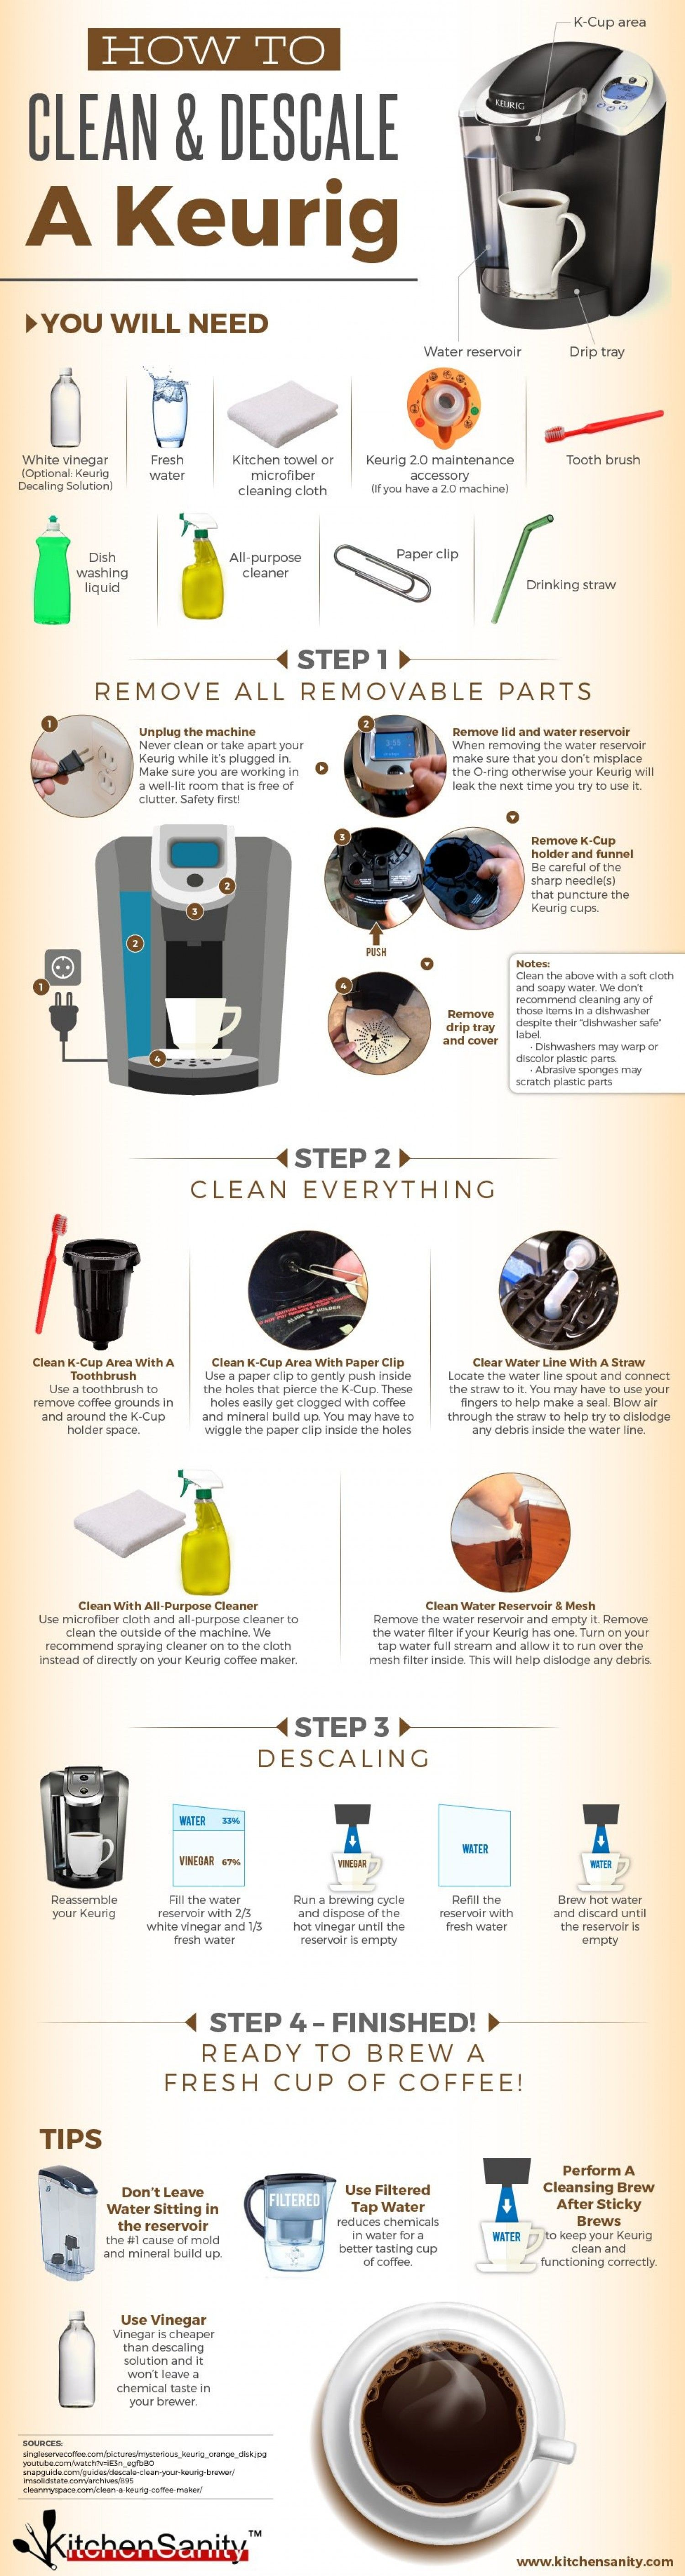 How To Clean A Keurig Coffee Maker Infographic Cleaning